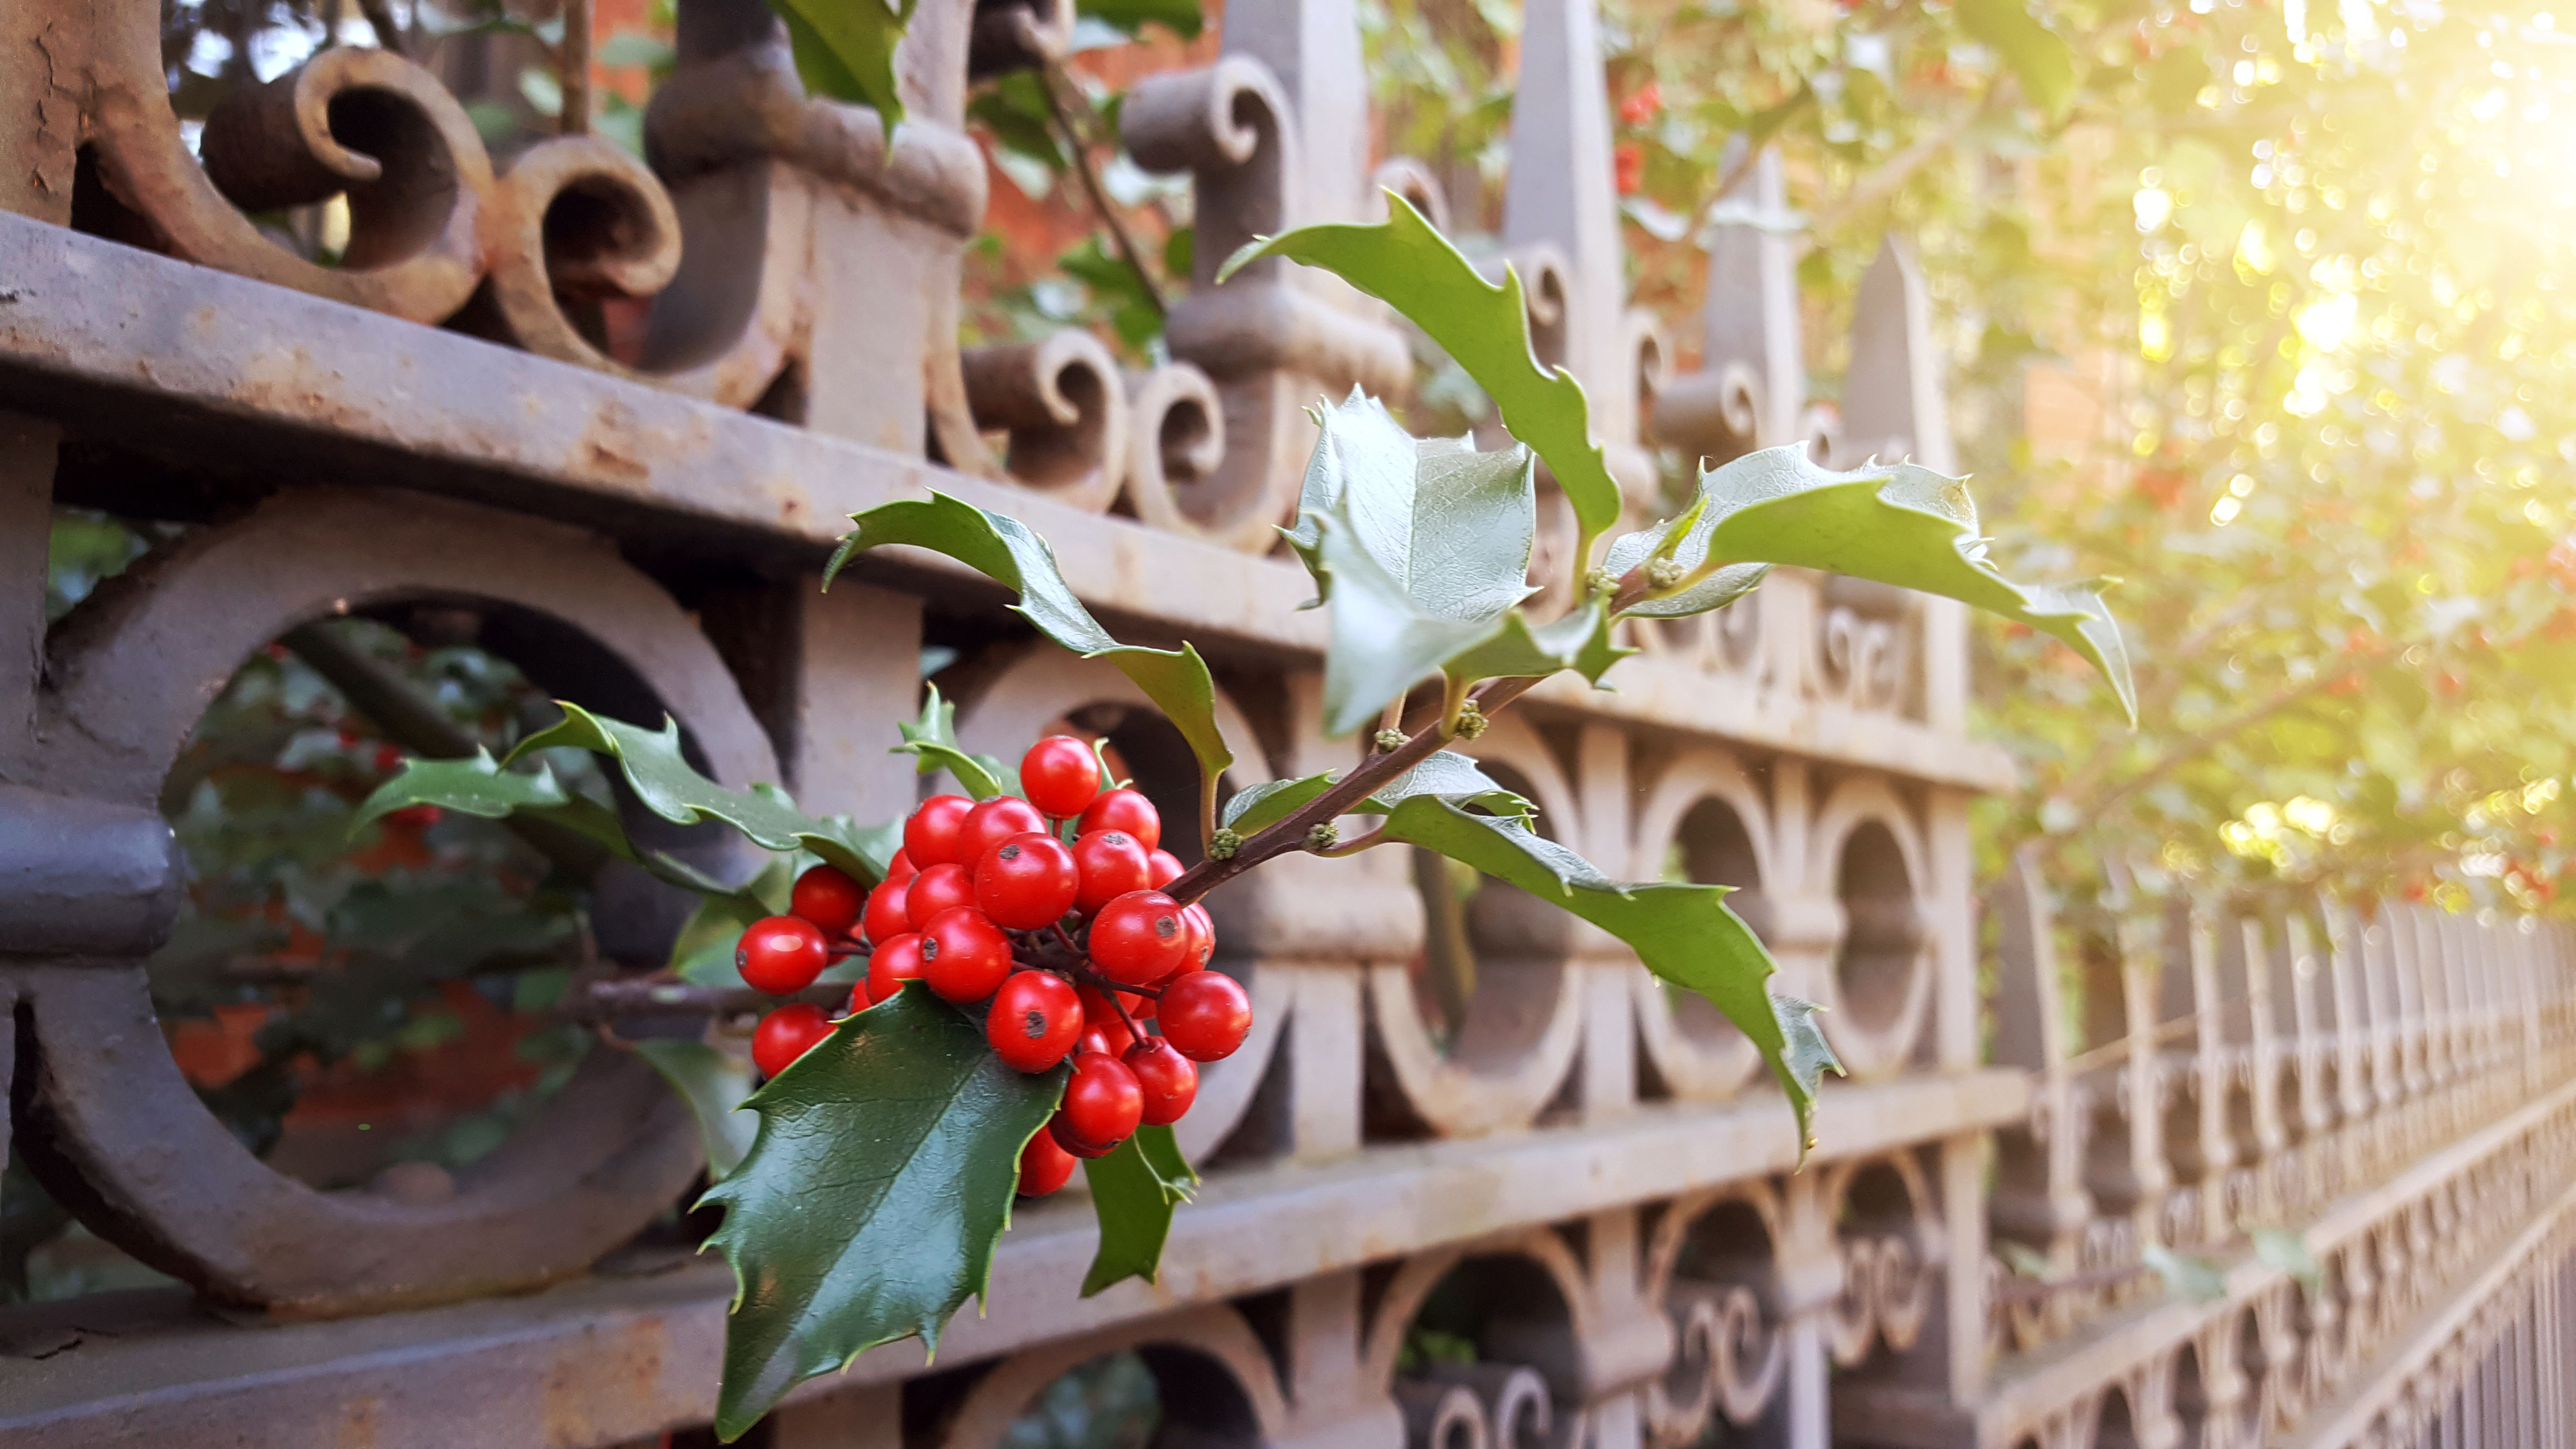 Detail of American Holly bush with berries on fence of townhouse